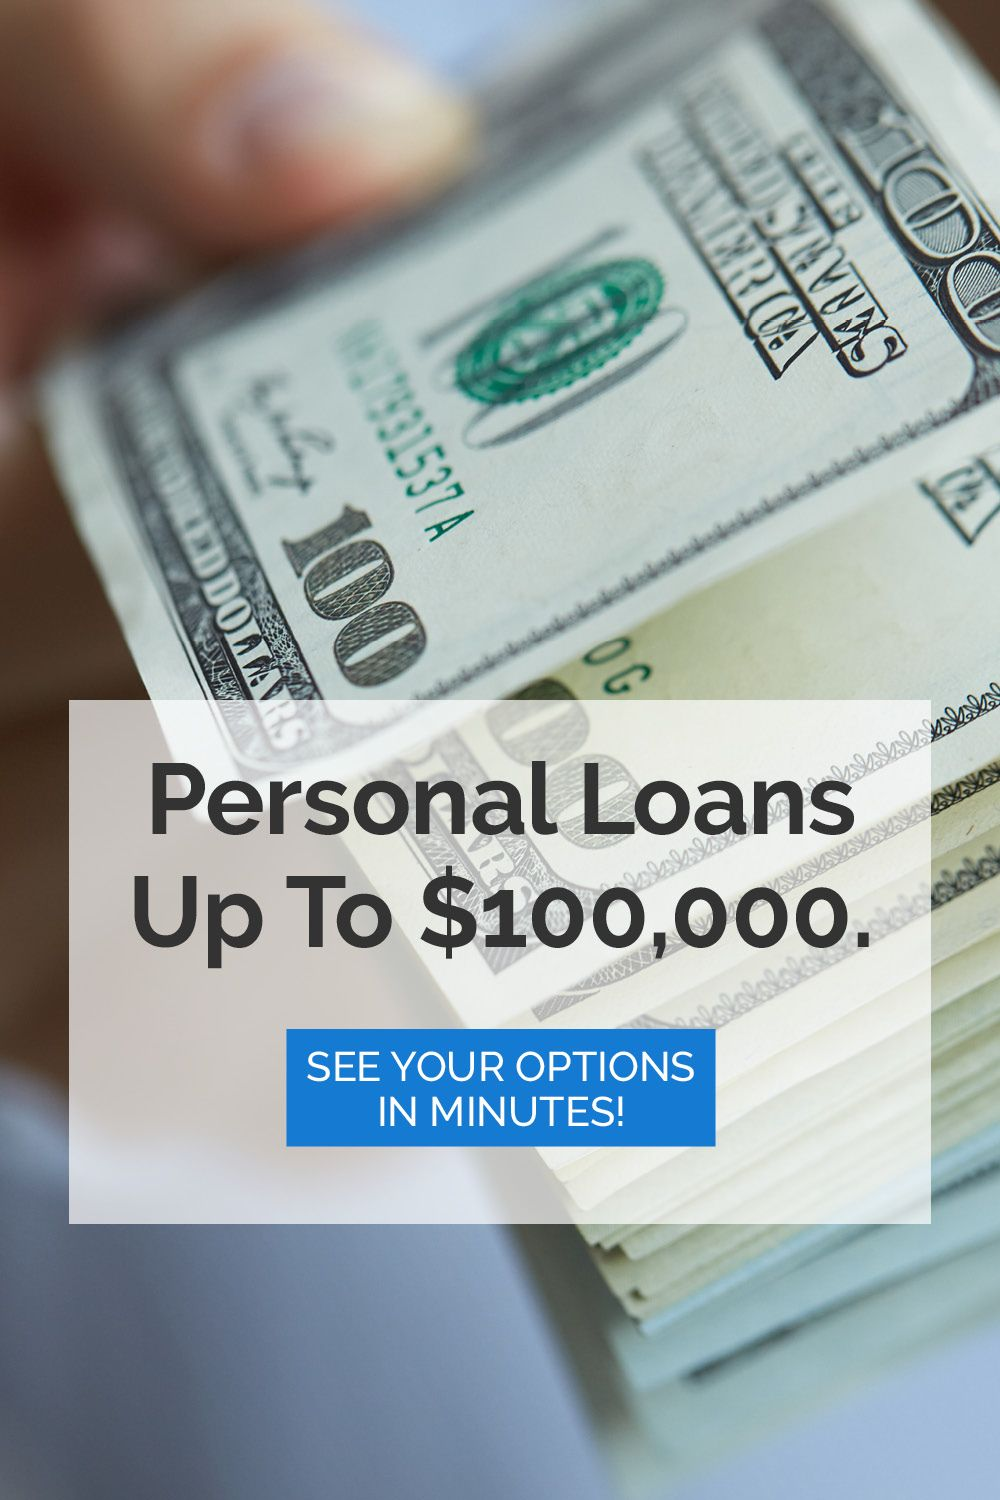 Loans Starting At 5k For Those With Good Credit Personal Loans Good Credit Best Loans